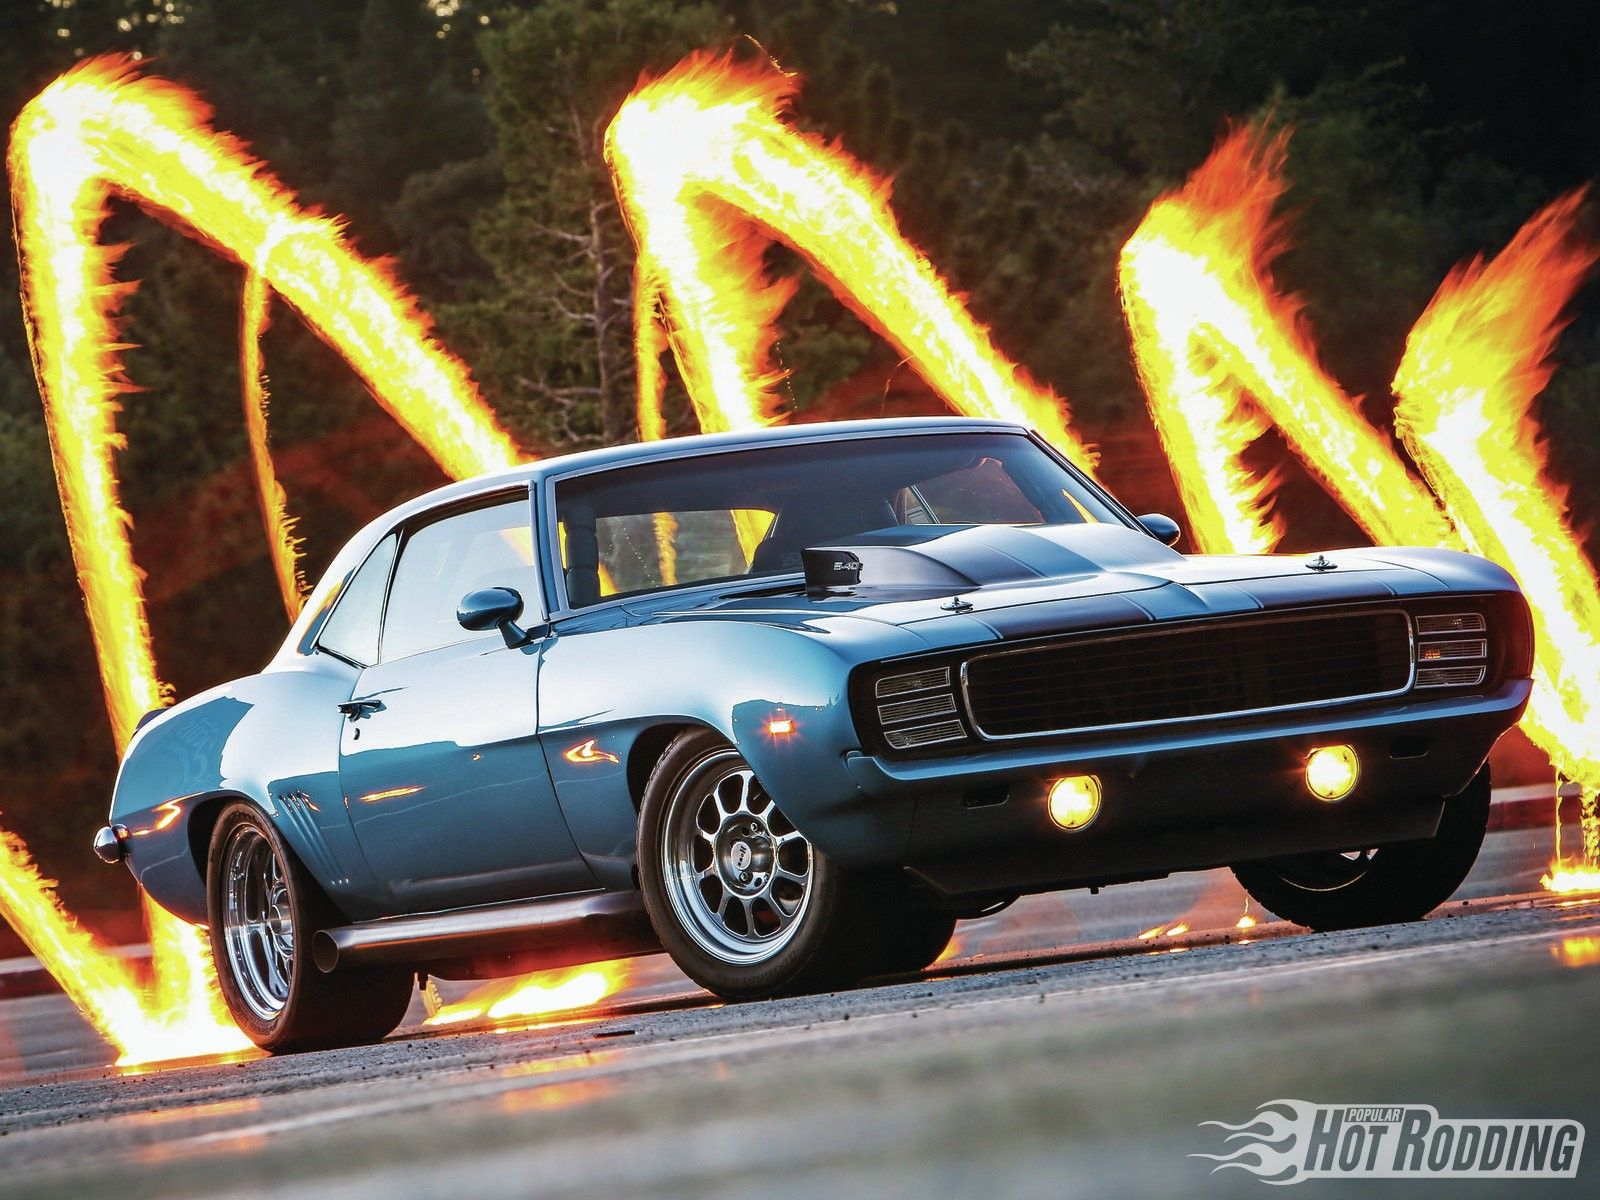 1600x1200 Expensive Cars, HD Car Wallpapers, Fire On Roads, Widescreen ...